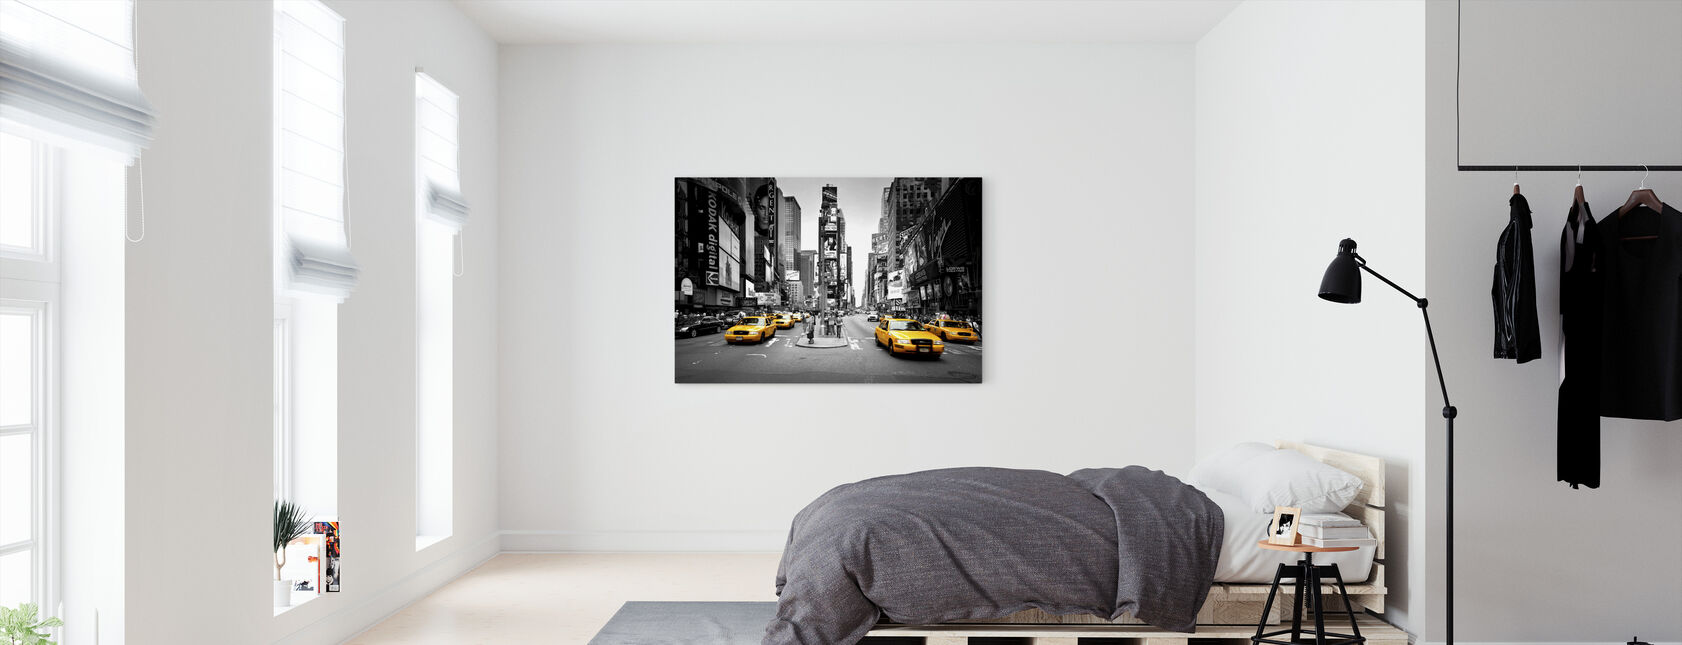 Times Square, New York, USA - Canvas print - Bedroom